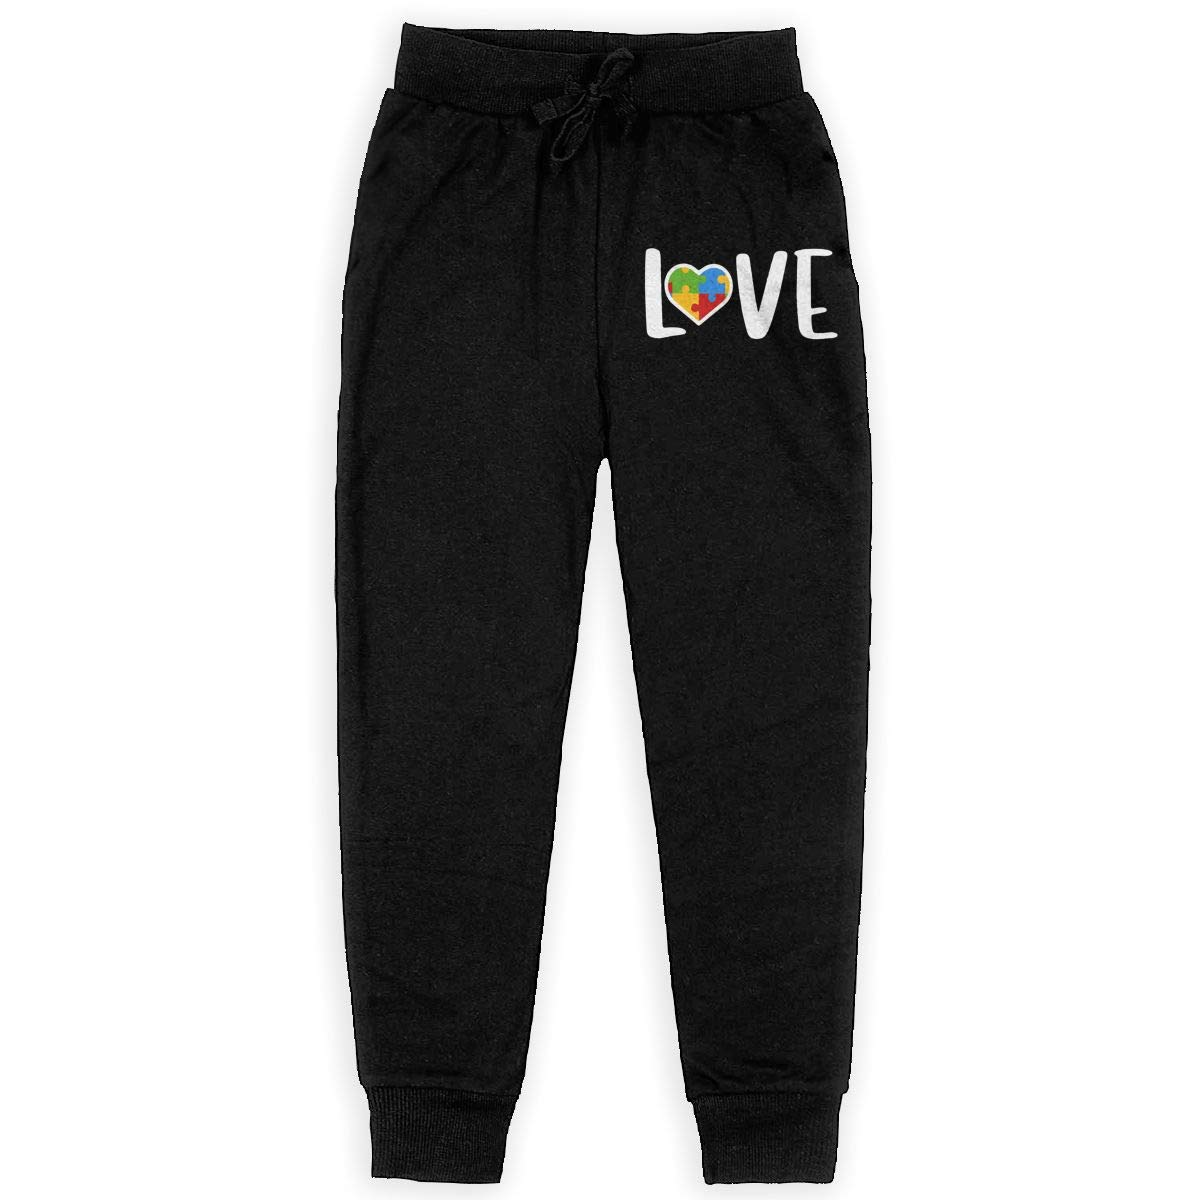 Youth Trousers Boy for Teenager Boys Autism Awareness Love Soft//Cozy Sweatpants